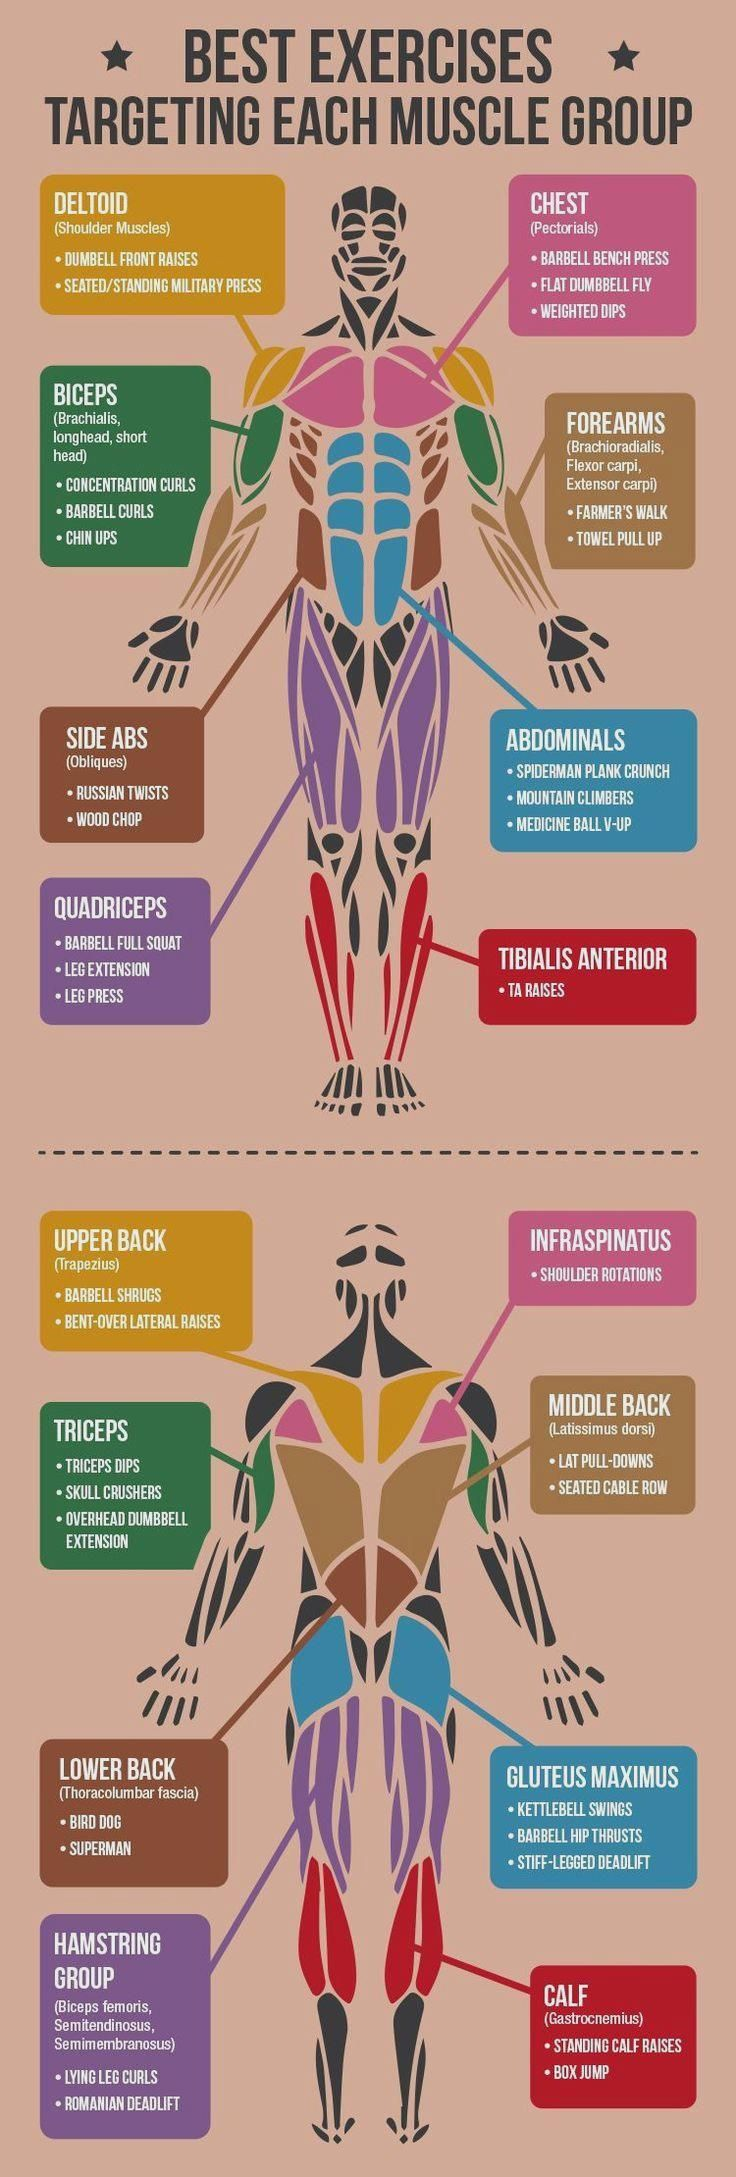 *CLICK FOR ALL EXERC  *CLICK FOR ALL EXERCISES* Best Exercises Targeting Each Muscle Group